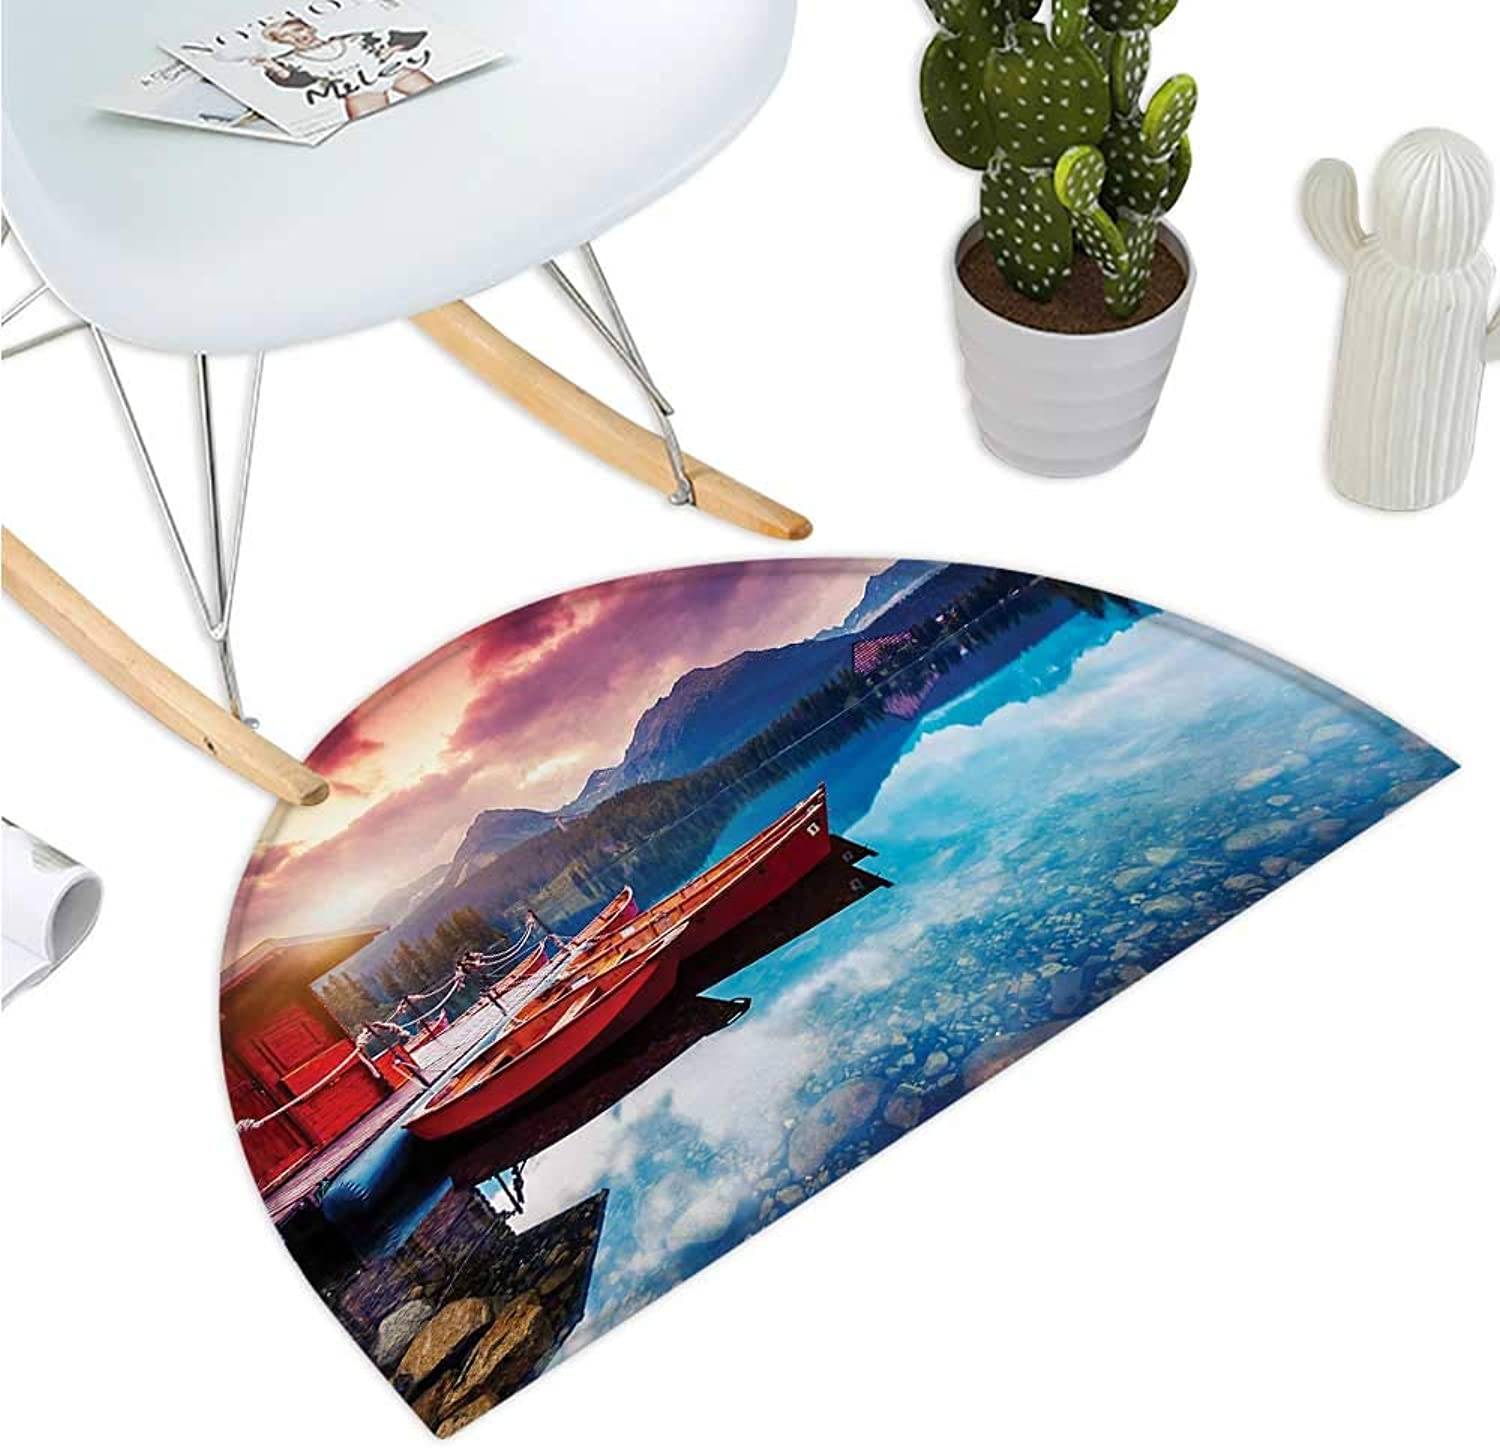 Landscape Half Round Door mats Peaceful Mountain Lake with Majestic Sky and Mountains South Asia Romantic View Bathroom Mat H 39.3  xD 59  Multicolor